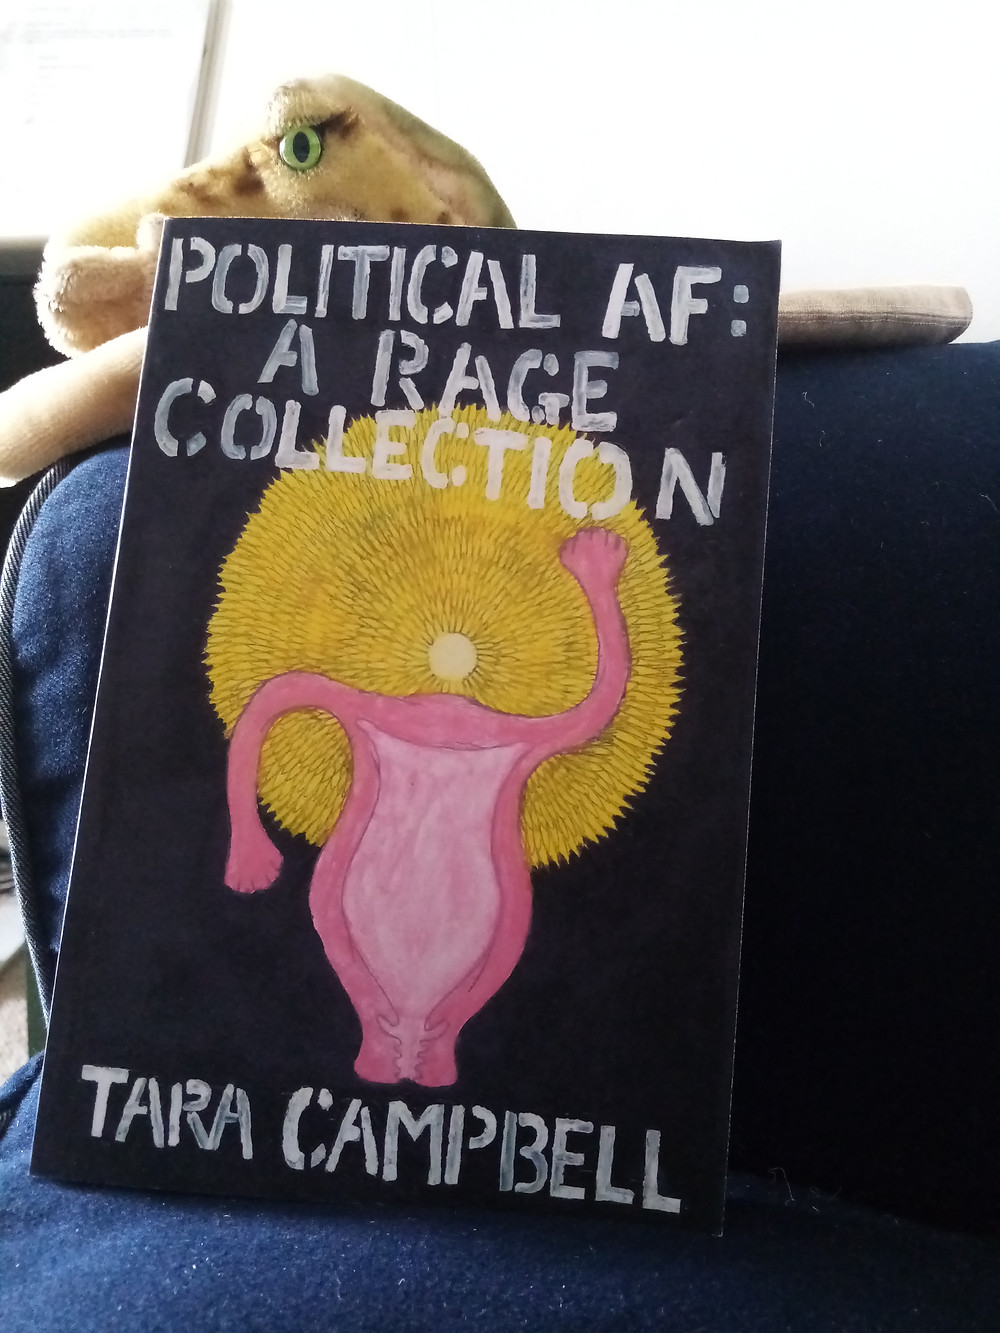 book cover for Tara Campbell pink figure against sun-like corolla